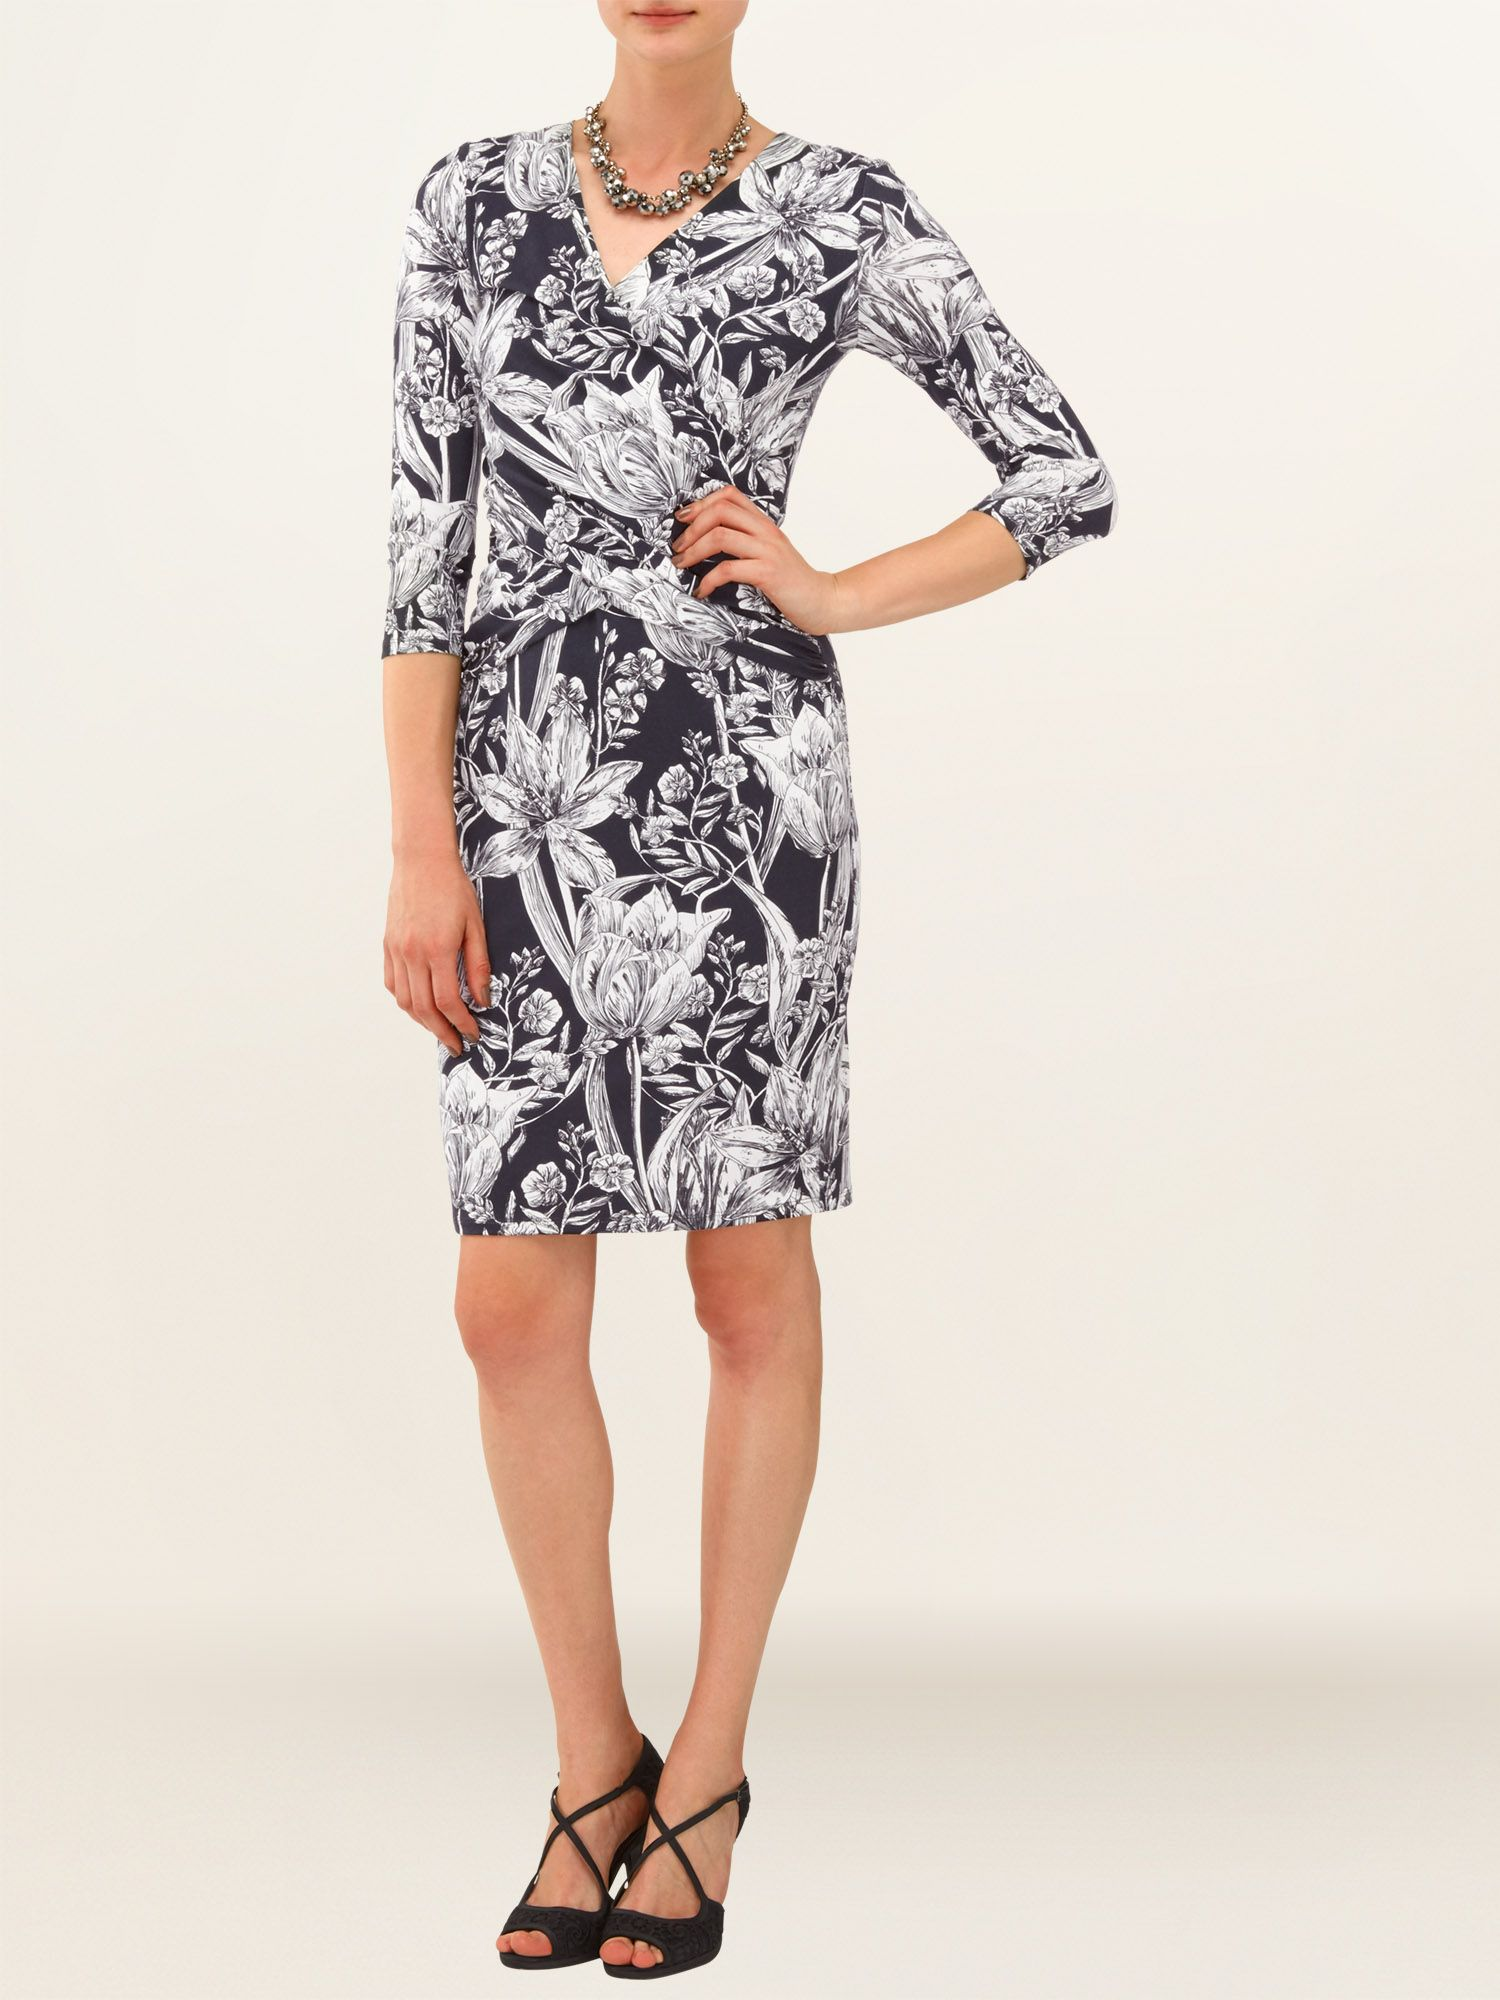 Berkley wrap dress